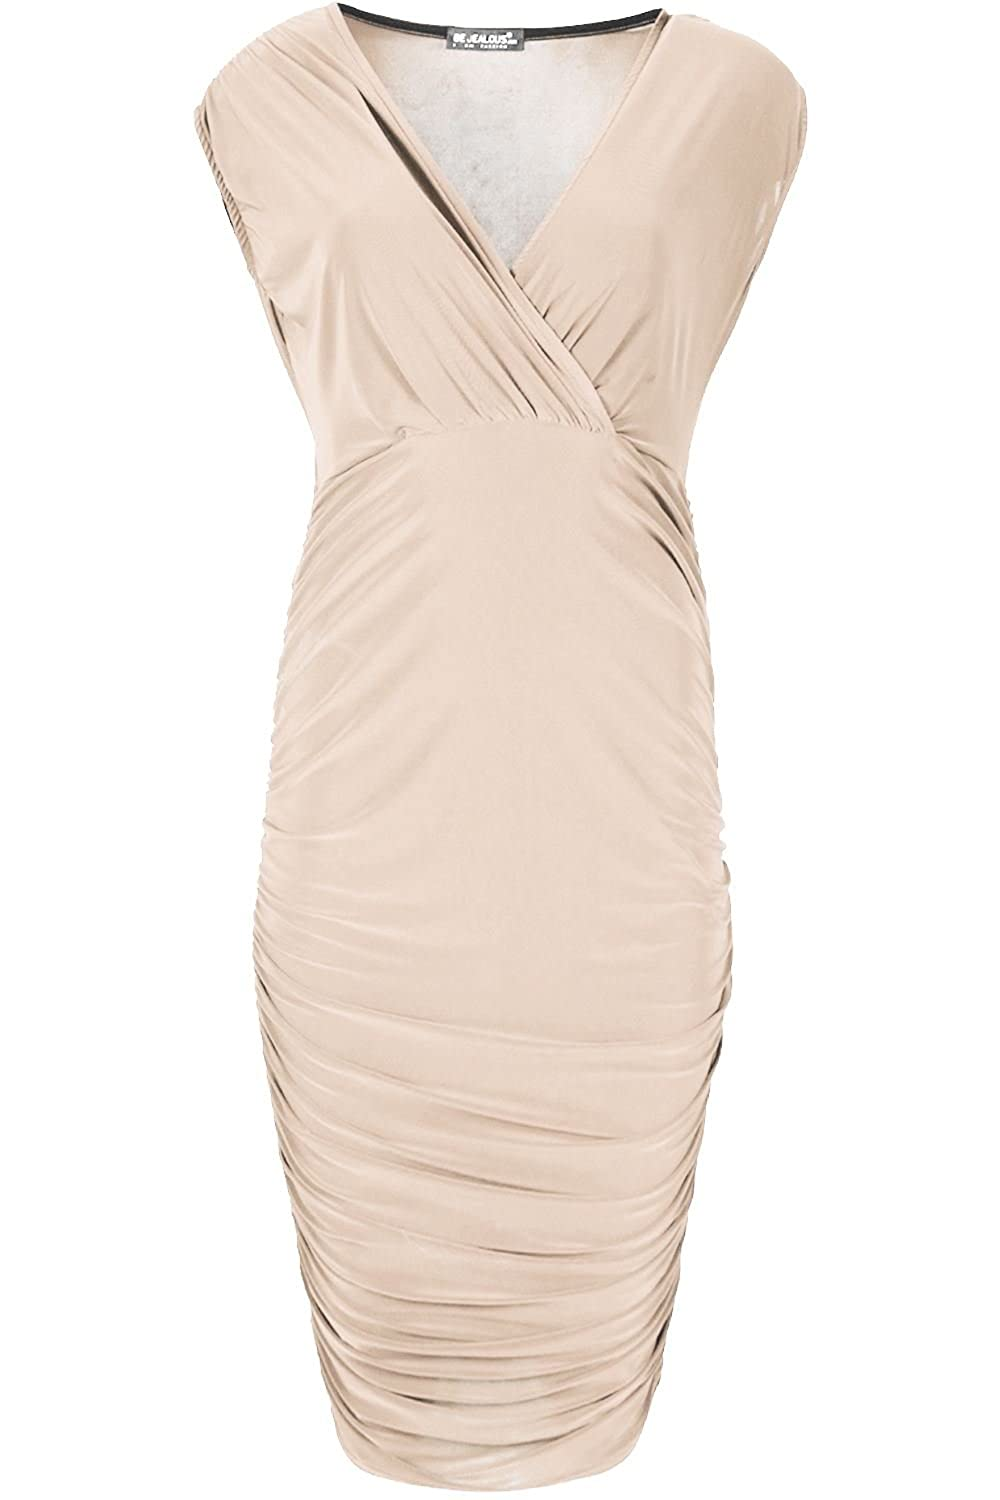 Oops Outlet Midi Dresses Sleeveless Wrap Cross Womens Over V Neck Side Ruched Bodycon